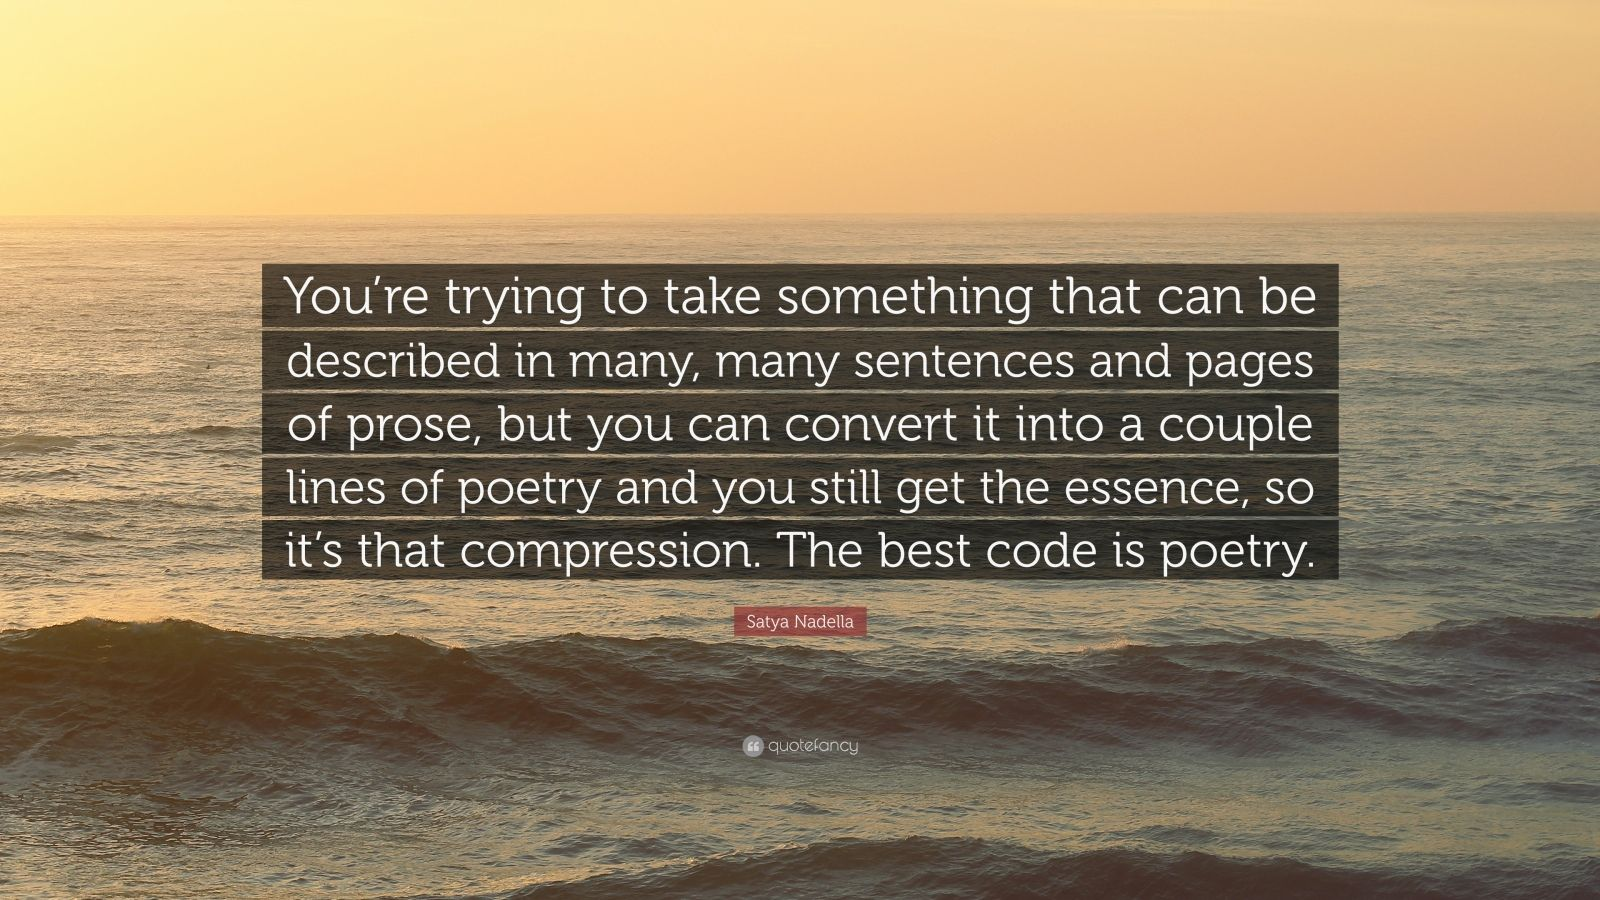 """Satya Nadella Quote: """"You're trying to take something that can be described in many, many sentences and pages of prose, but you can convert it into a couple lines of poetry and you still get the essence, so it's that compression. The best code is poetry."""""""